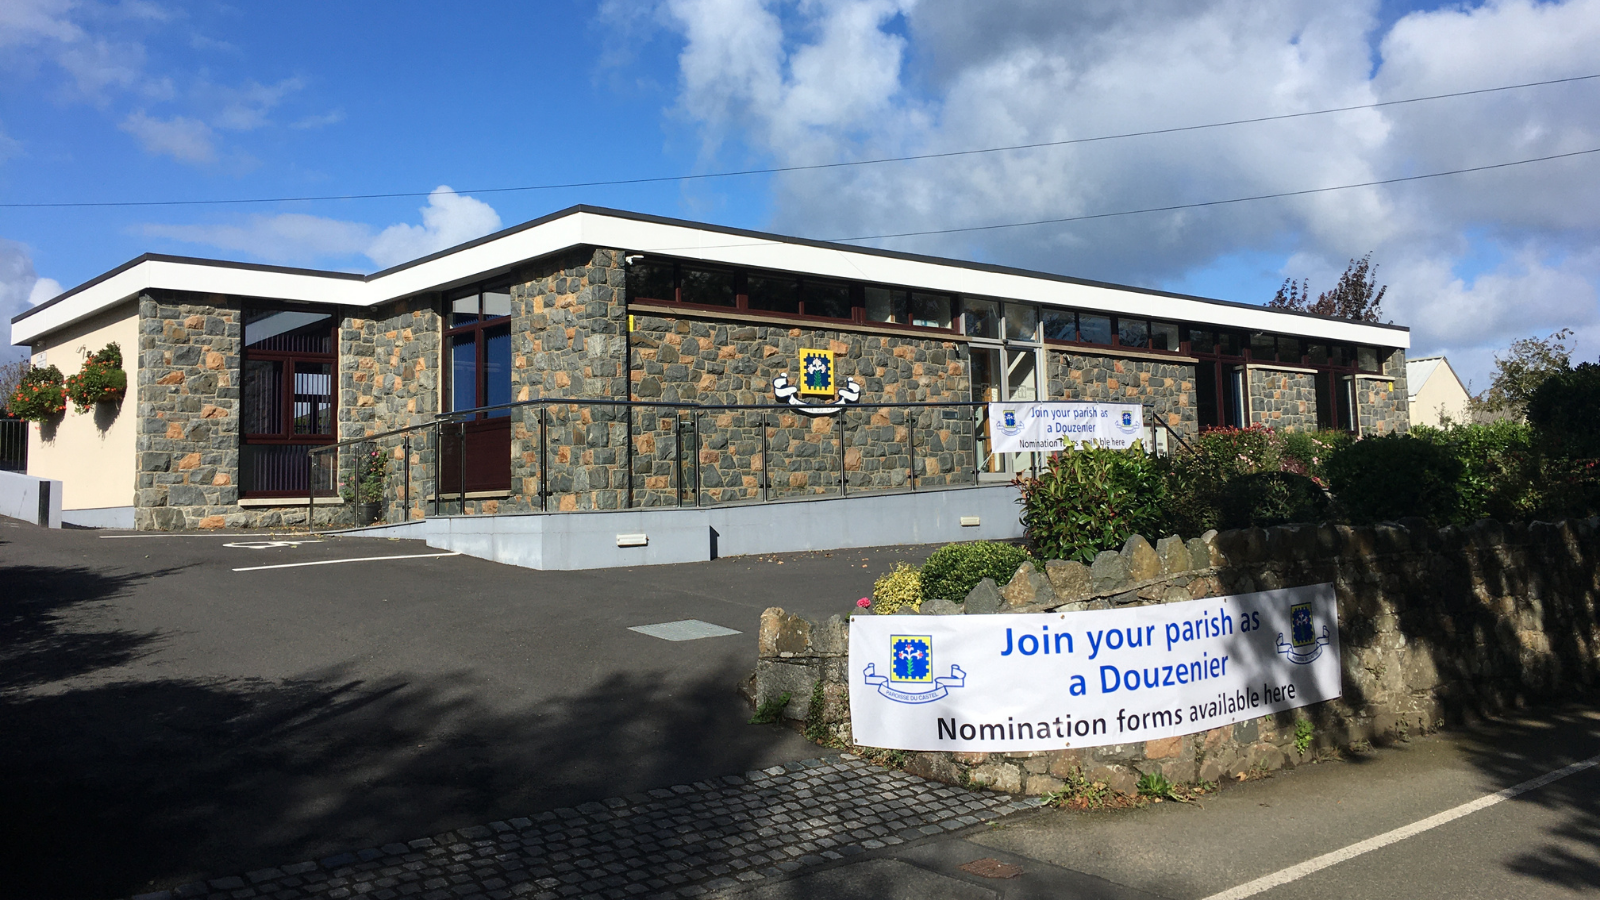 Opportunities to join your Douzaine